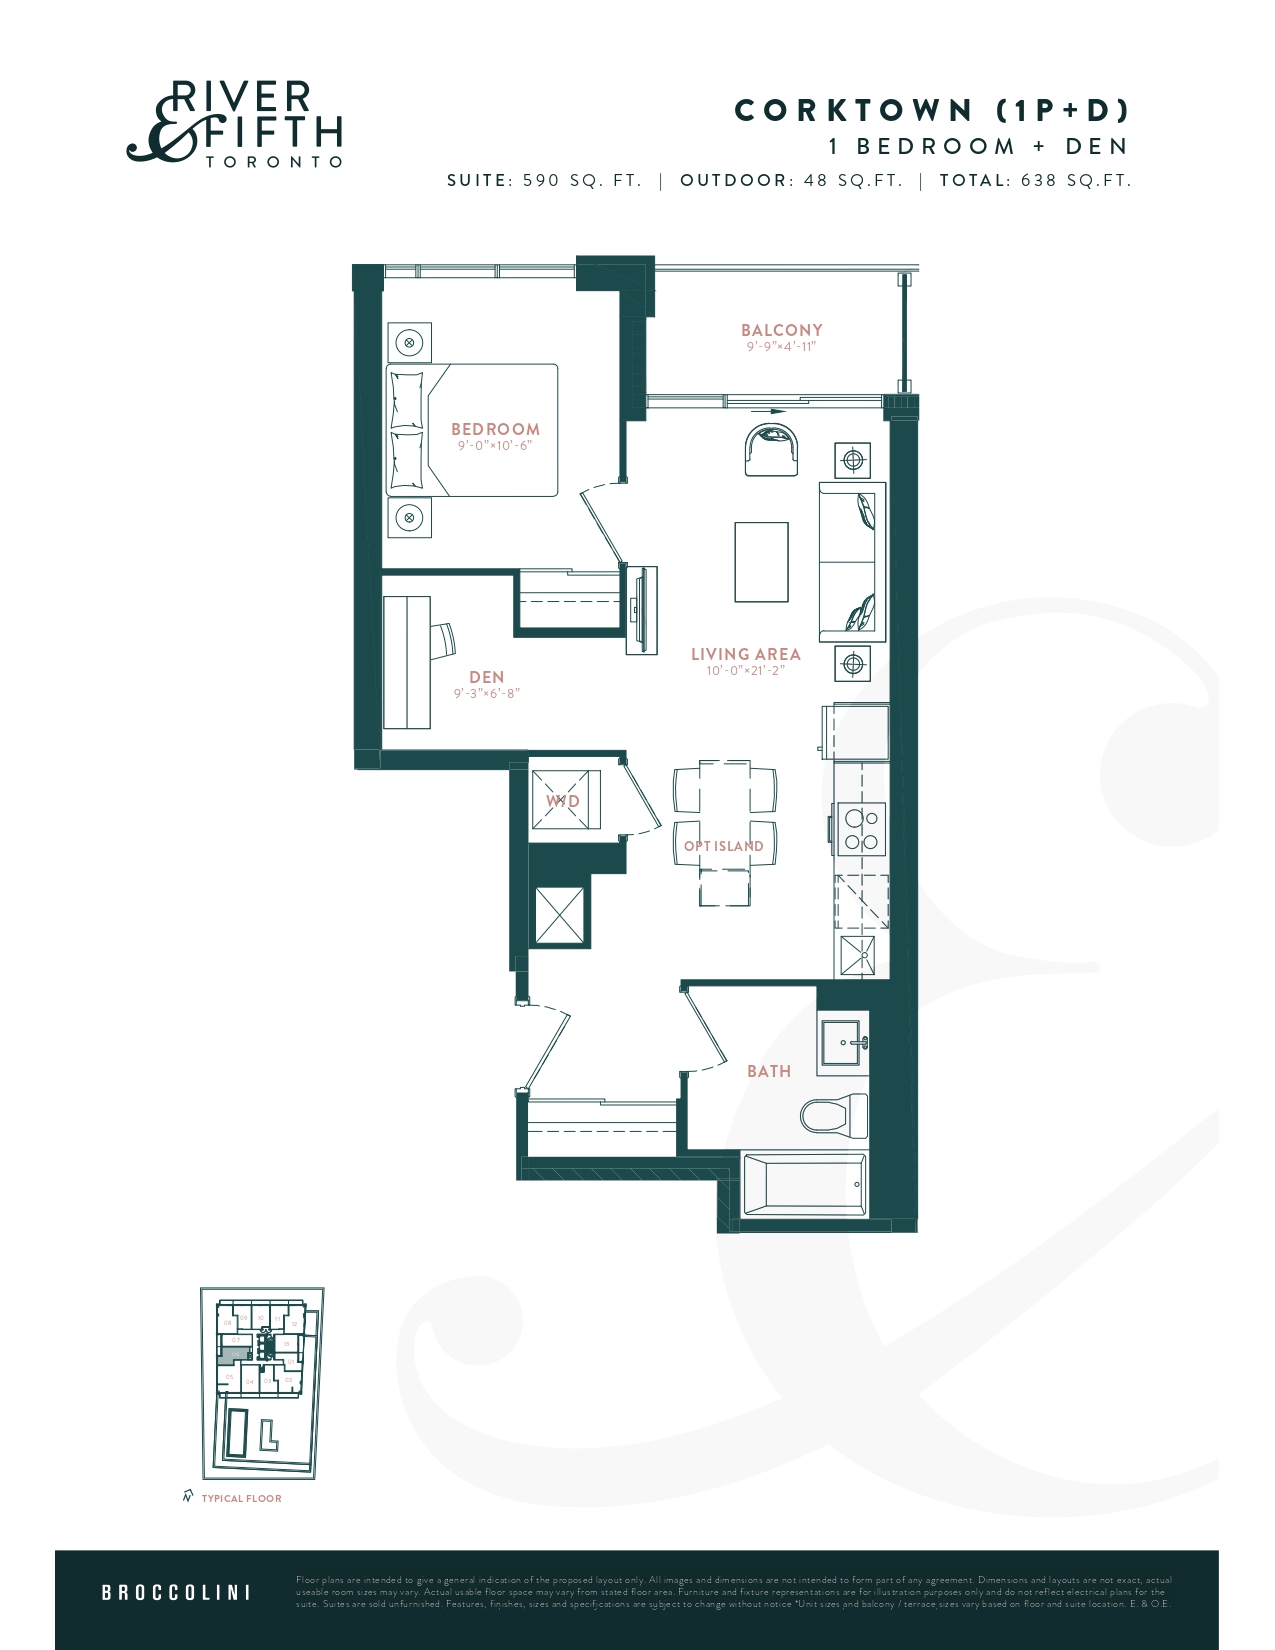 Corktown (1P+D) Floor Plan at River & Fifth Condos - 590 sq.ft